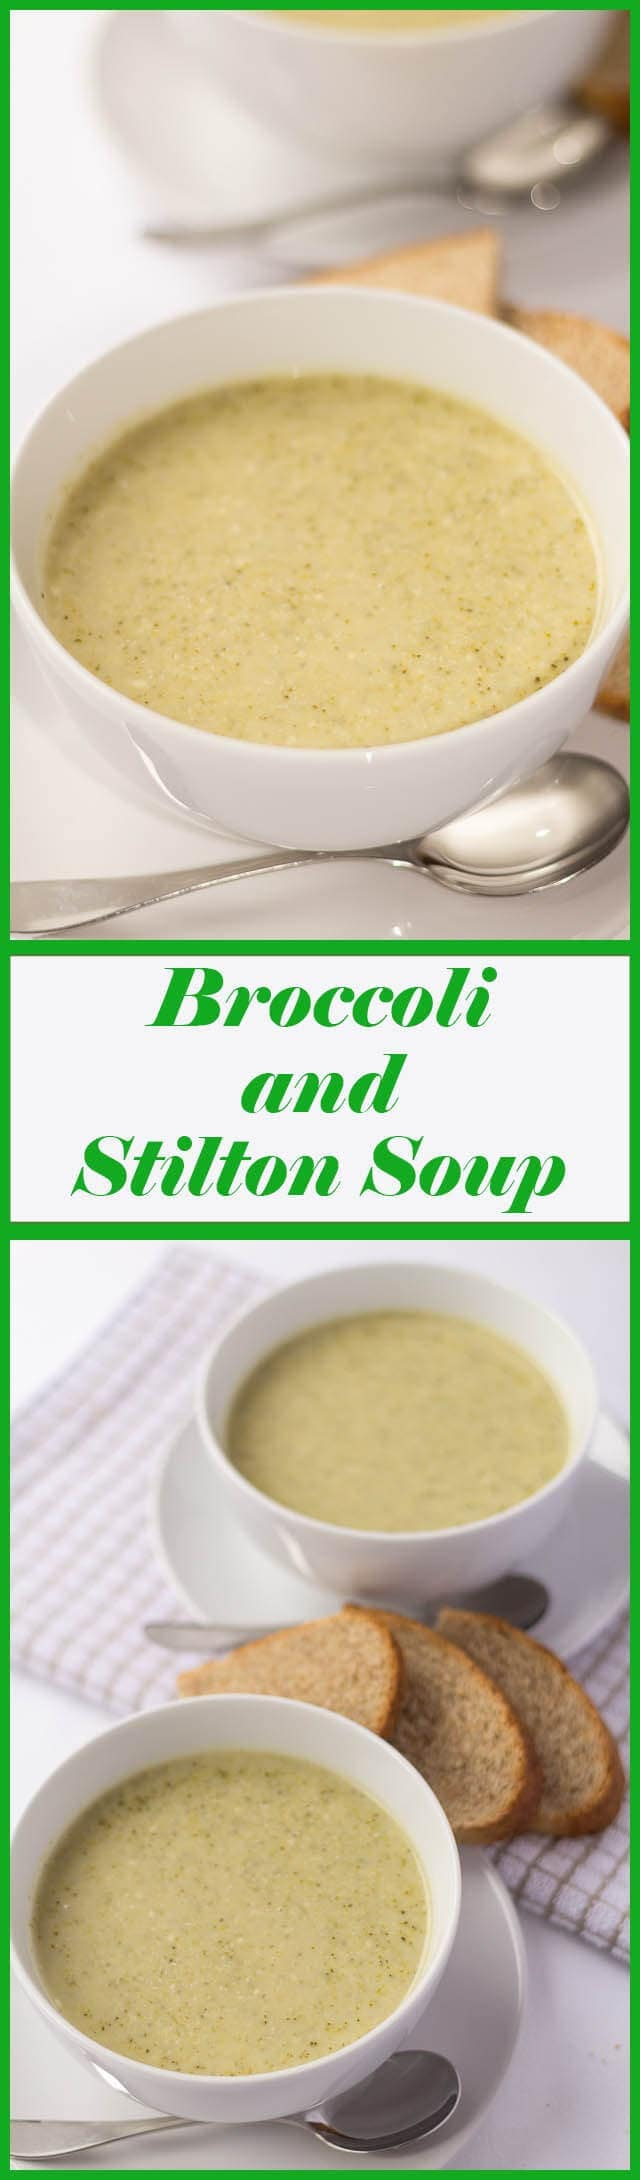 This broccoli and stilton soup is vegetarian, gluten free and low calorie. Its a cheesy tasting delicious bowl of comfort giving you a warm glow at any time of the year. You would never know that this is only 293 calories a serving!